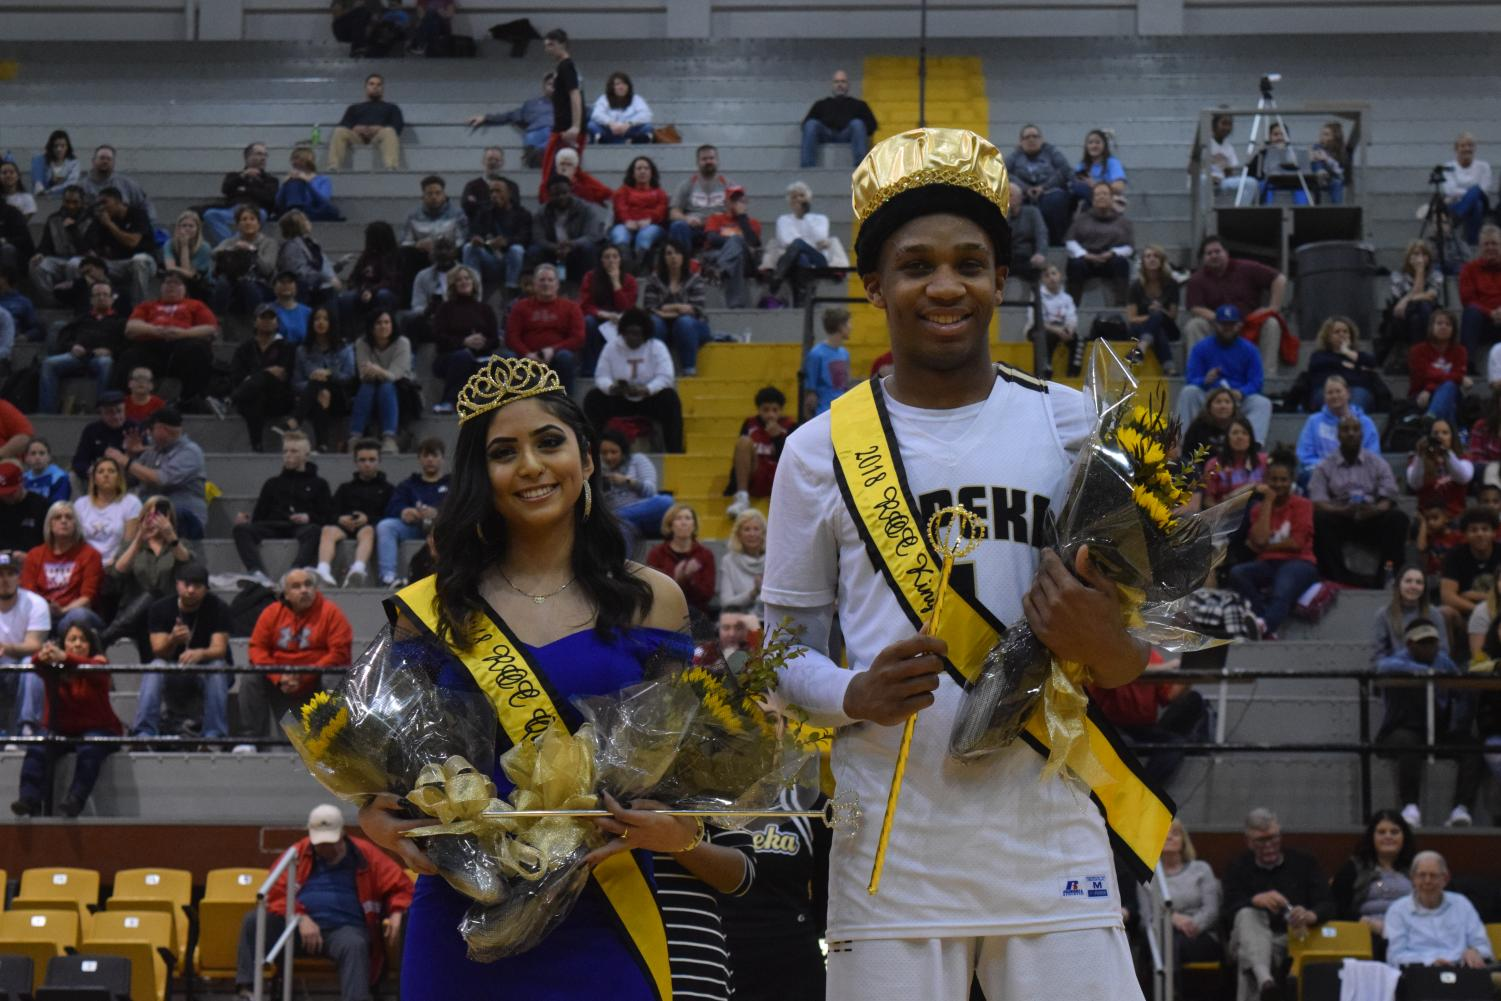 Lily Espinoza and Larry White crowned King and Queen